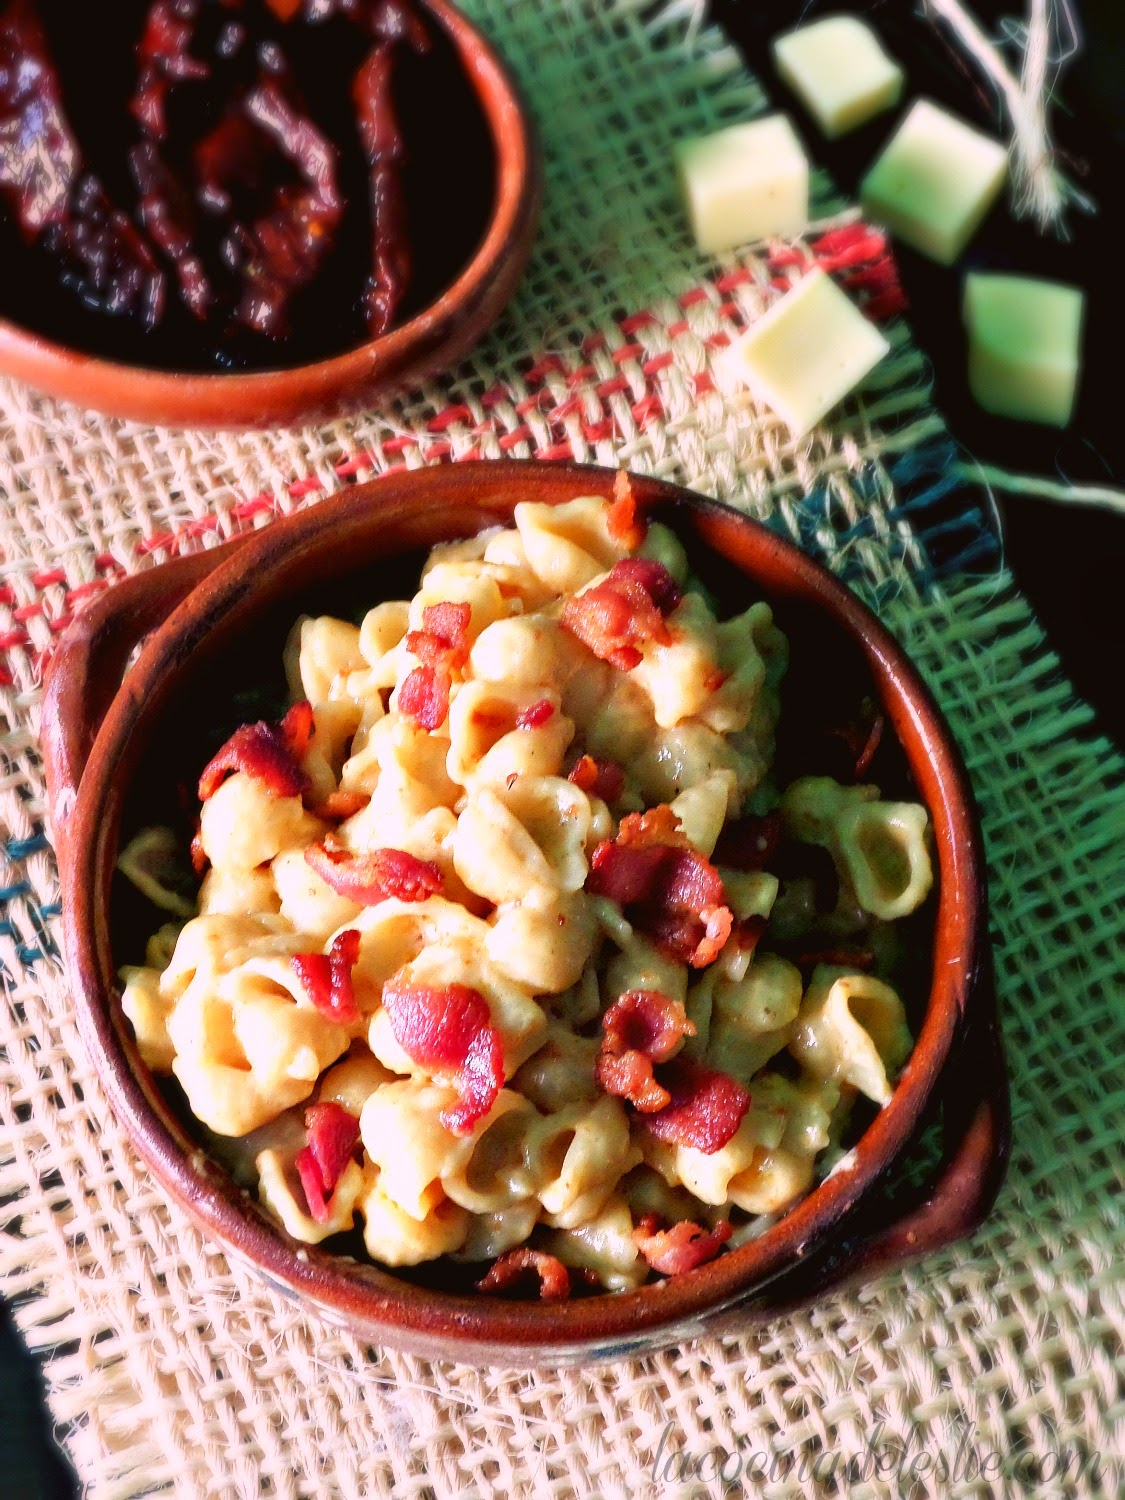 Bacon Chipotle Macaroni Cheese - lacocinadeleslie.com